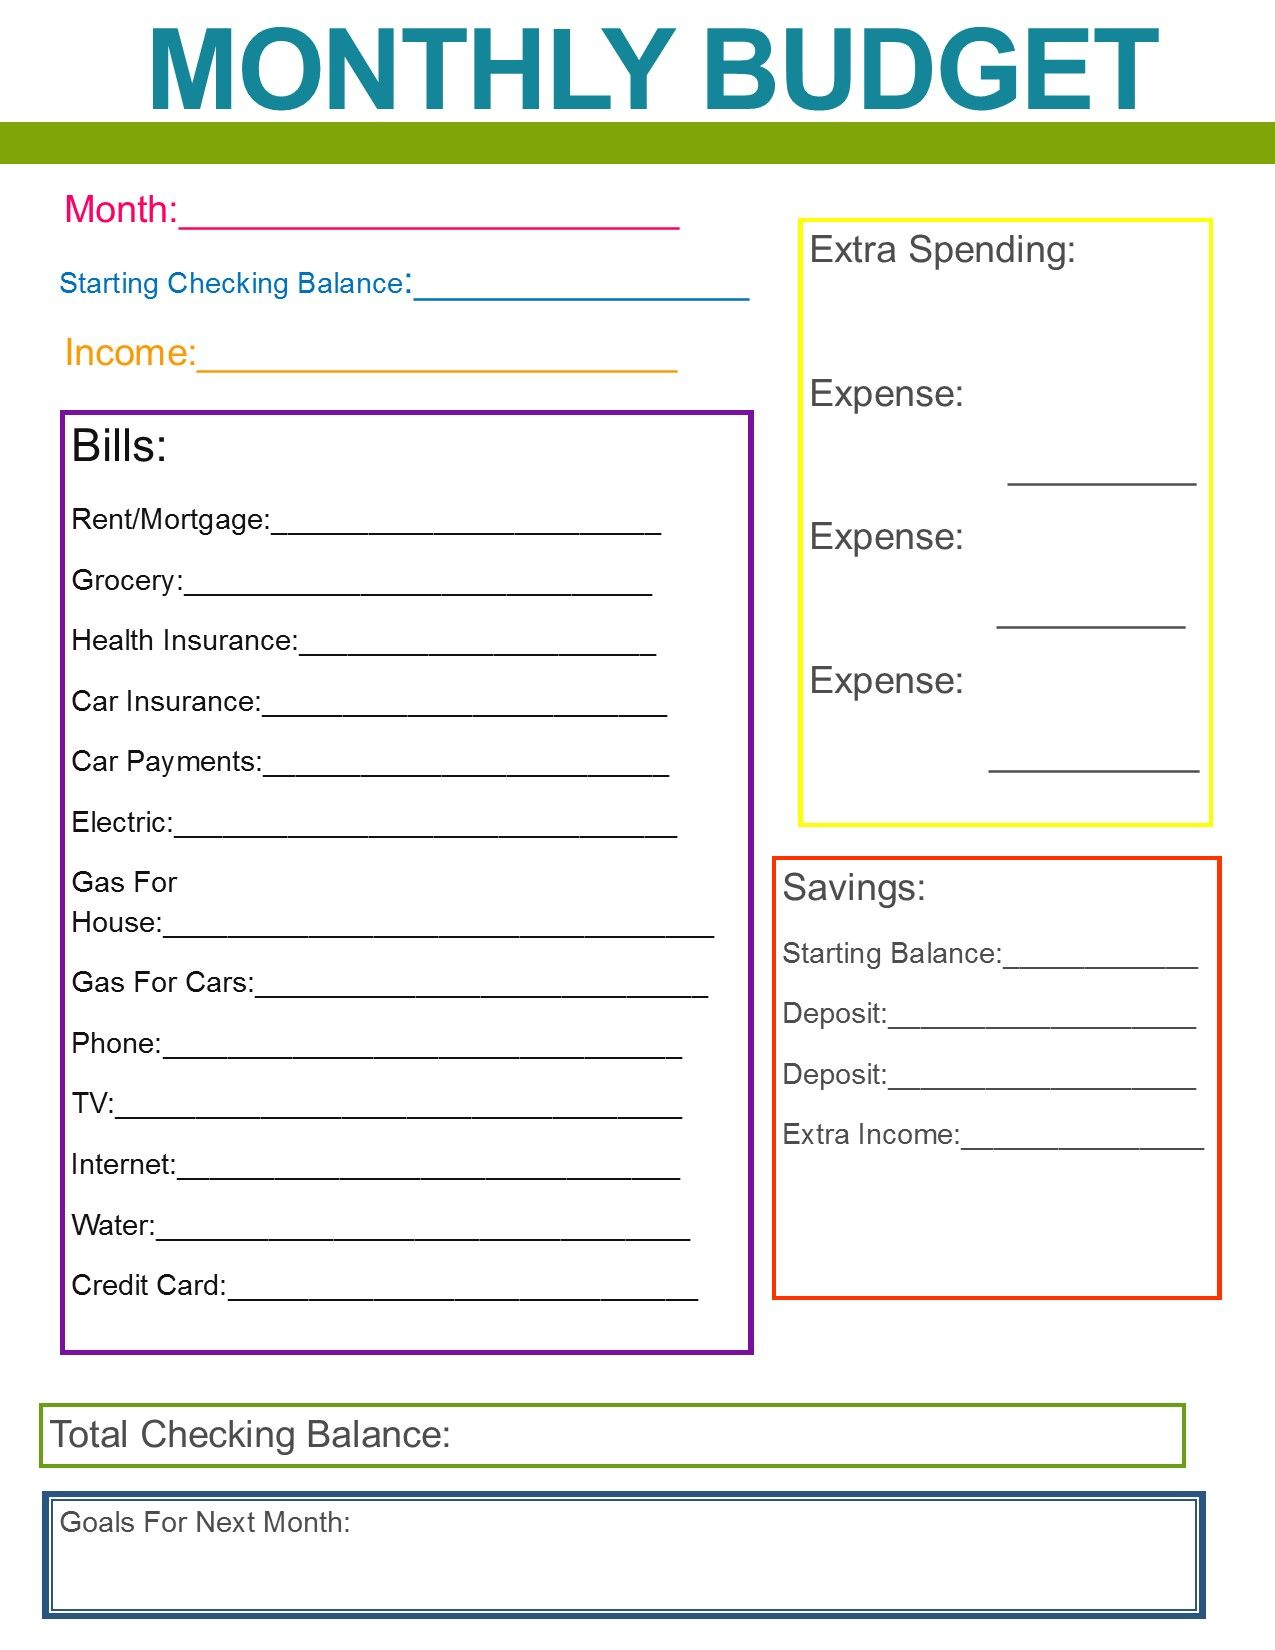 Worksheets Printable Family Budget Worksheet monthly family budget budgeting organisations and organizing thinking outside the pot